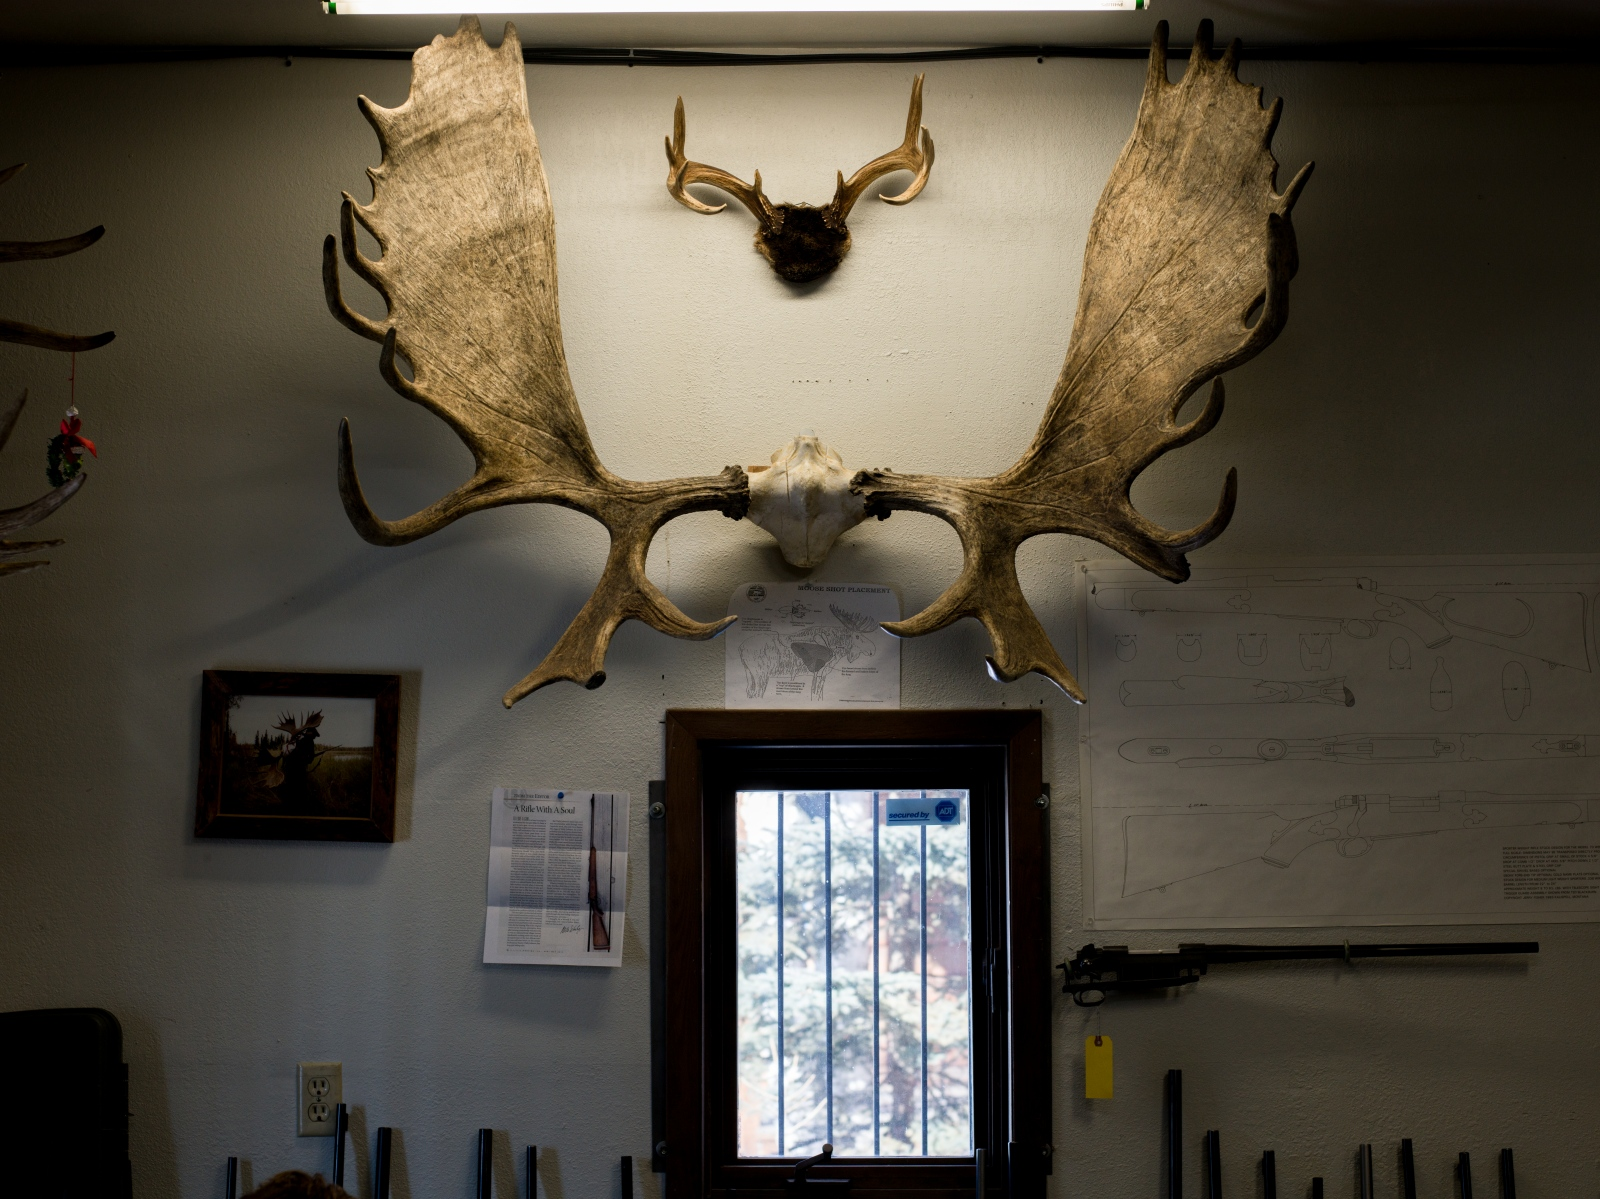 One of the walls in Andrew Hawk's gunsmithing shop in Anchorage, Alaska. While he hunts other animals, moose hunting is what he says he does most. Hawk works from home along with his girlfriend Jen Jolliffe, an acupuncturist. Both receive healthcare coverage through the ACA and are concerned about what the AHCA for health coverage would mean for them.